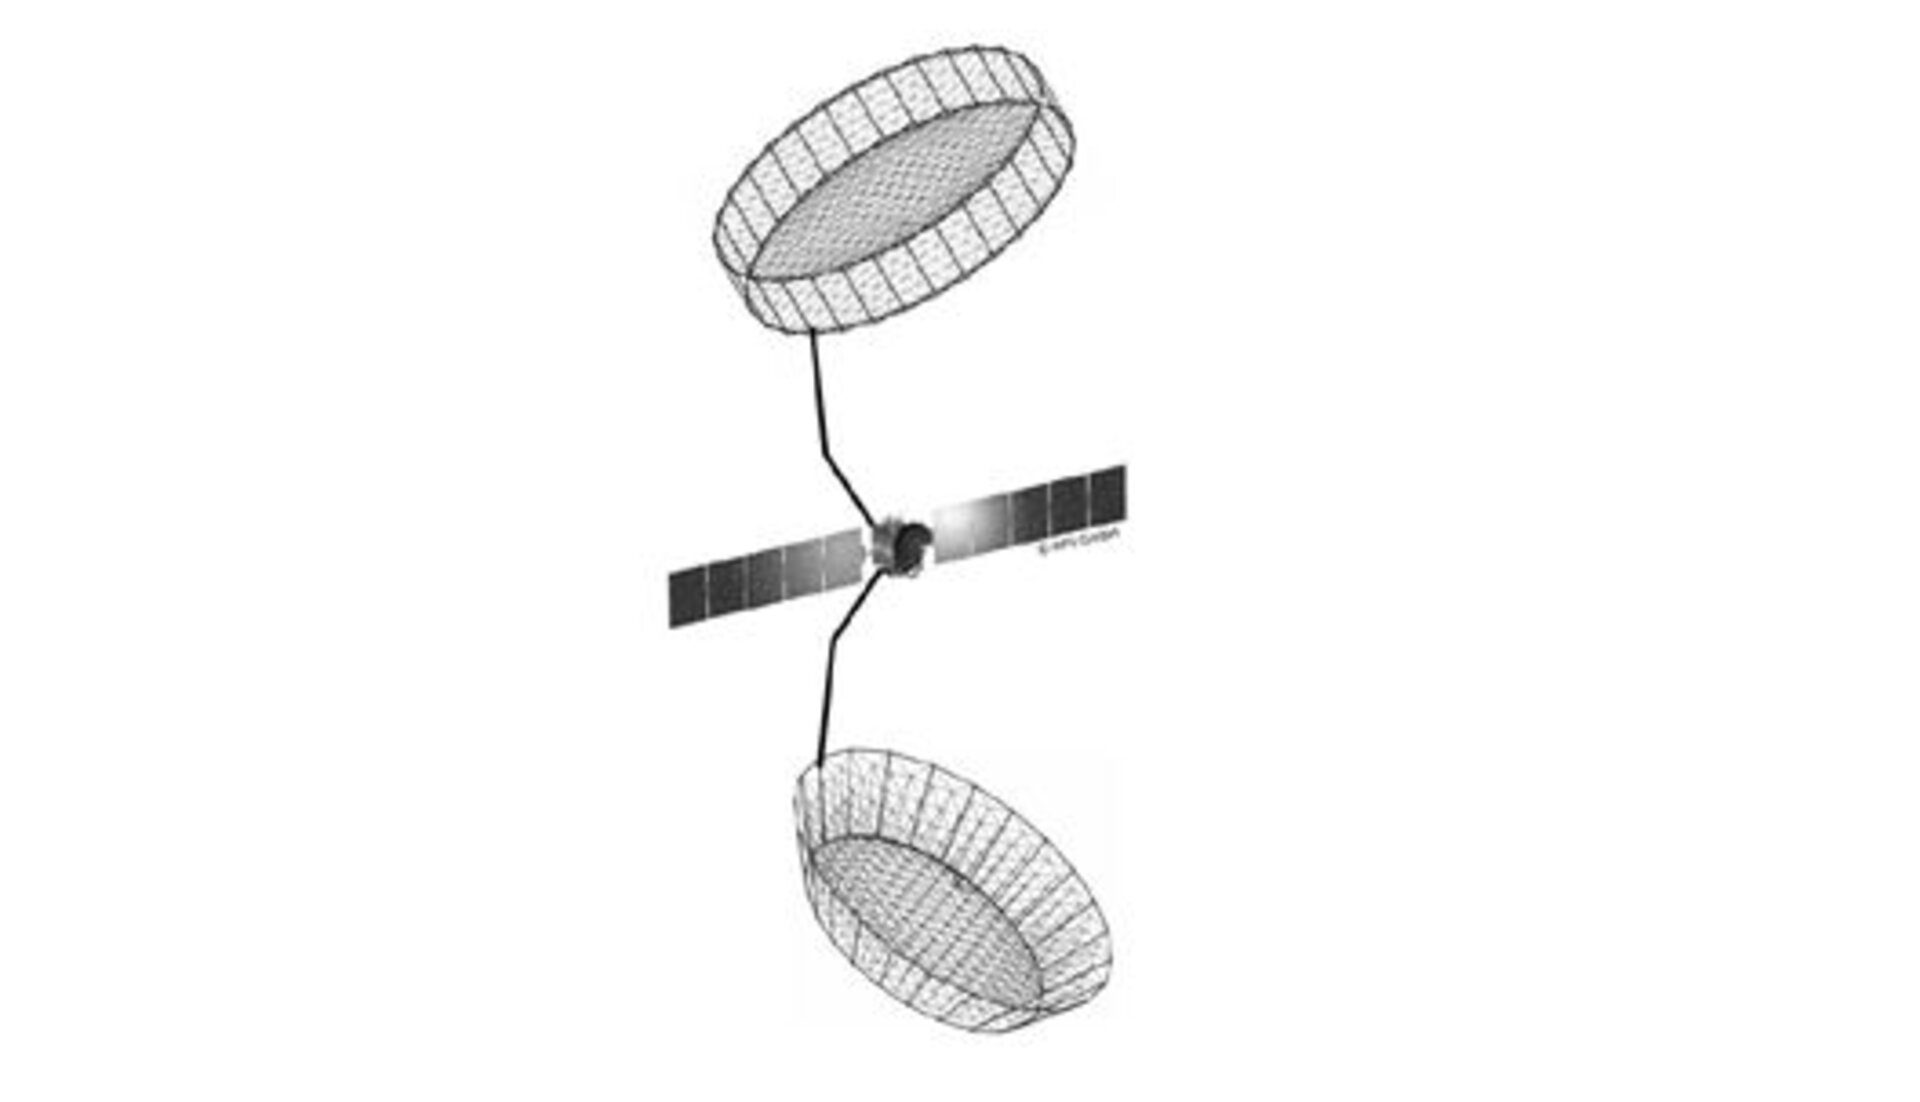 Spacecraft with large deflector antennas deployed